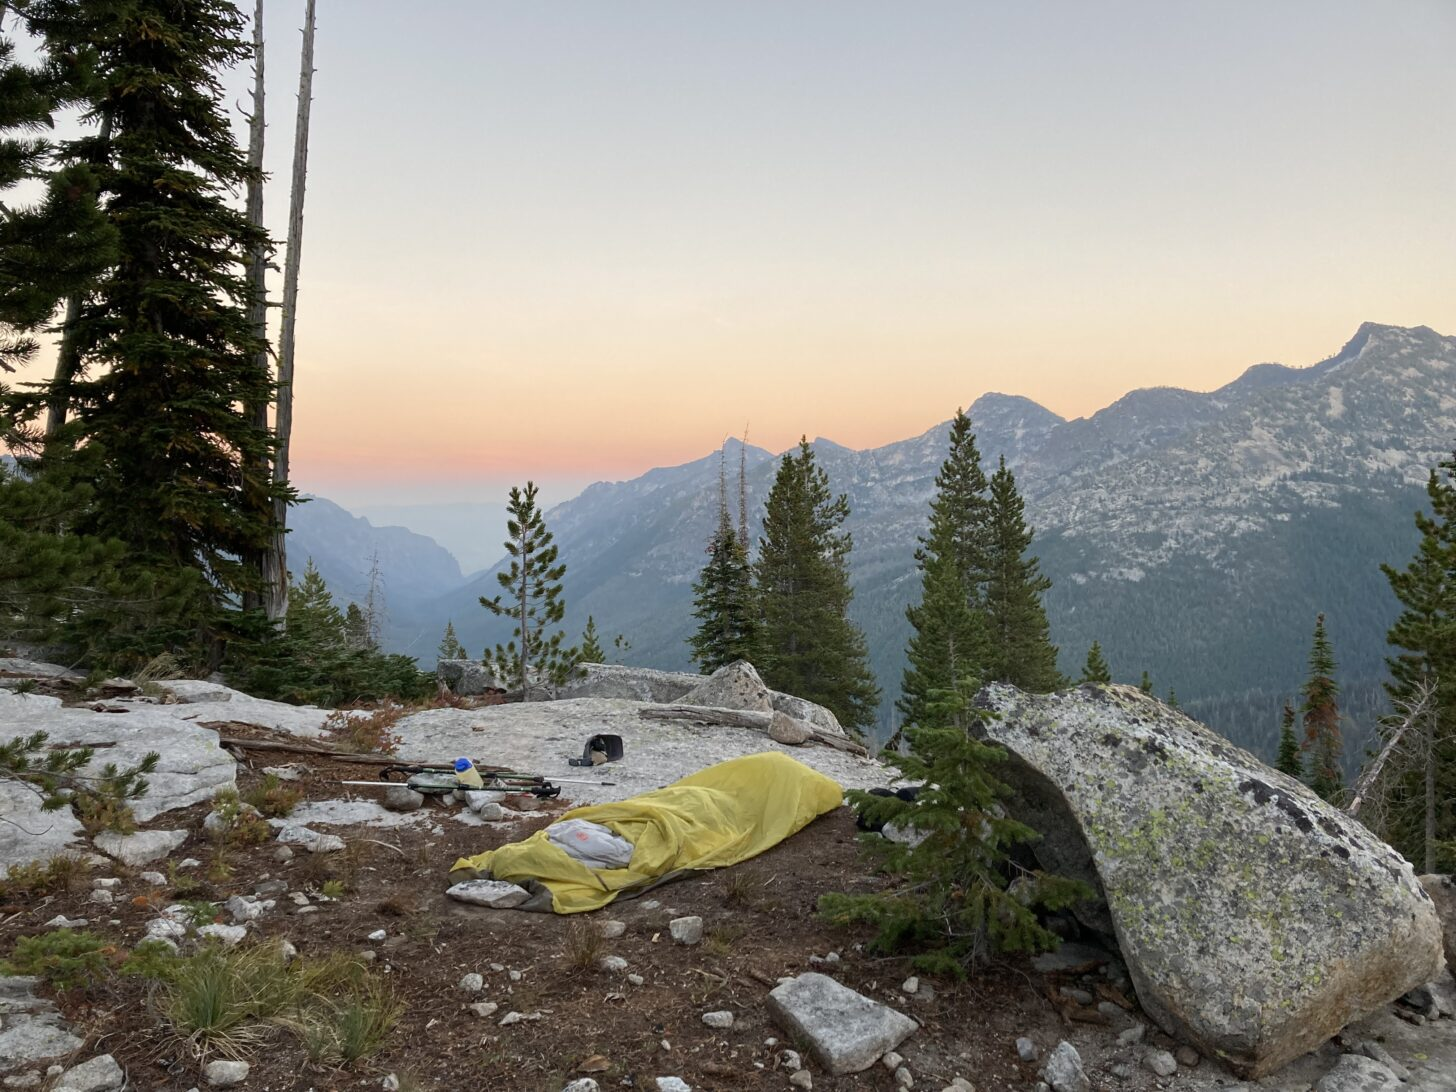 a campsite looking out over a range of mountains and a canyon, with a haze of fog or smoke in the background